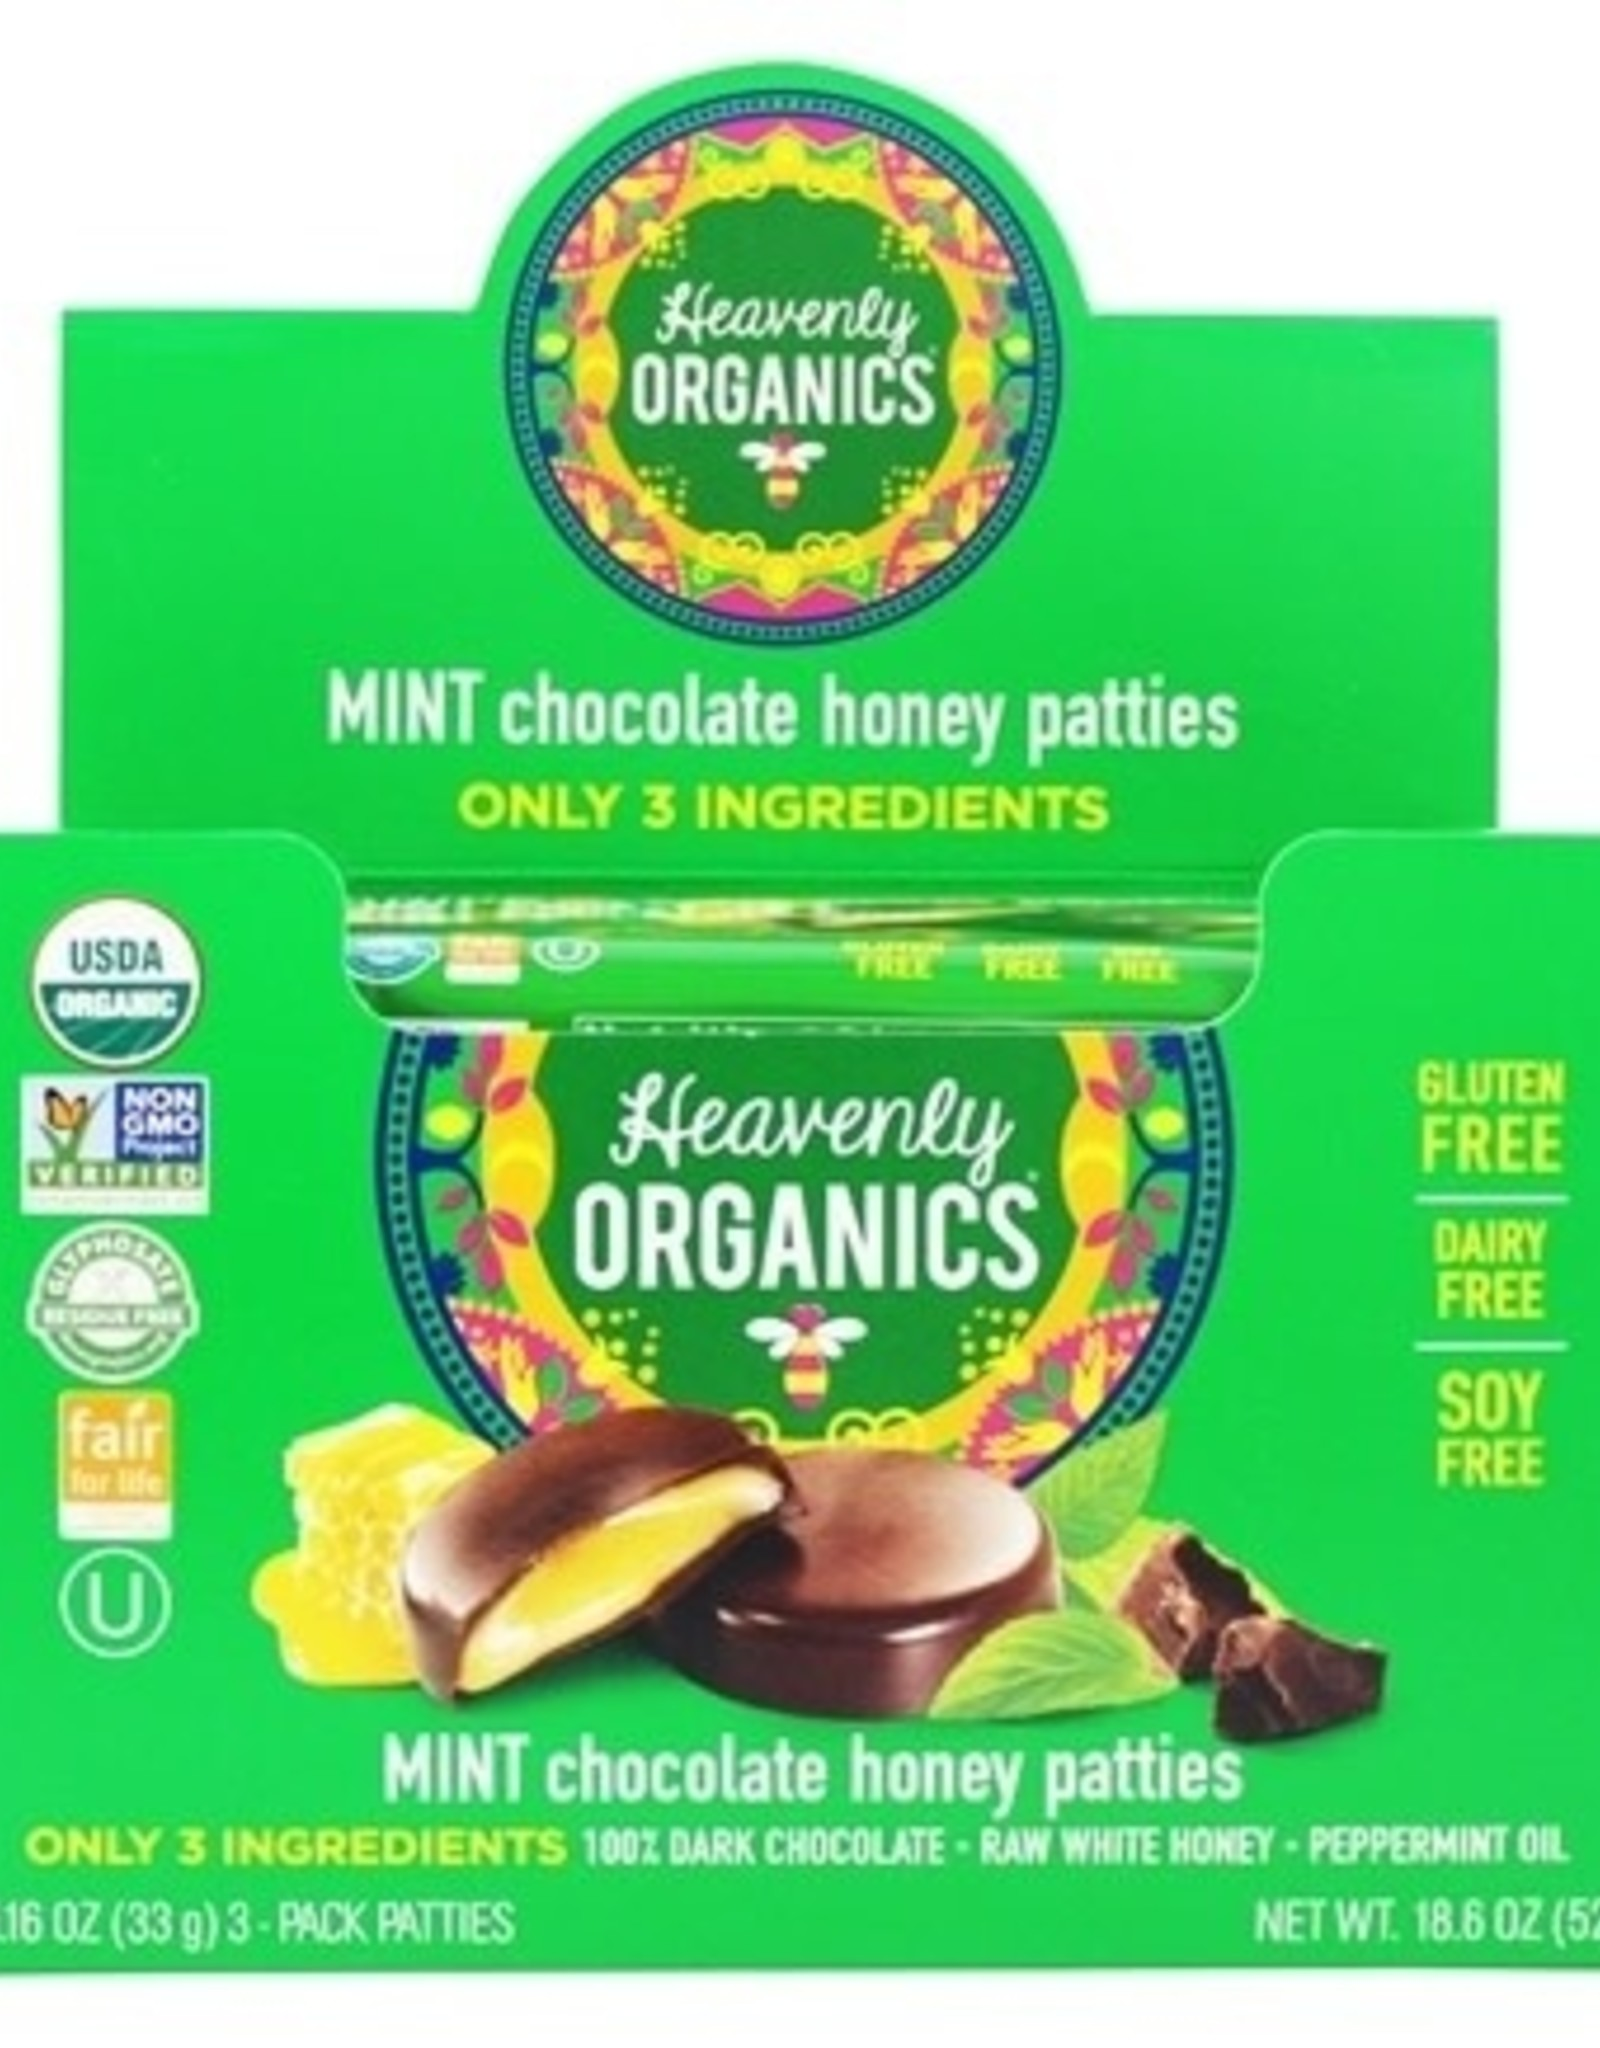 Heavenly Organics Mint Chocolate Honey Pattie (single)